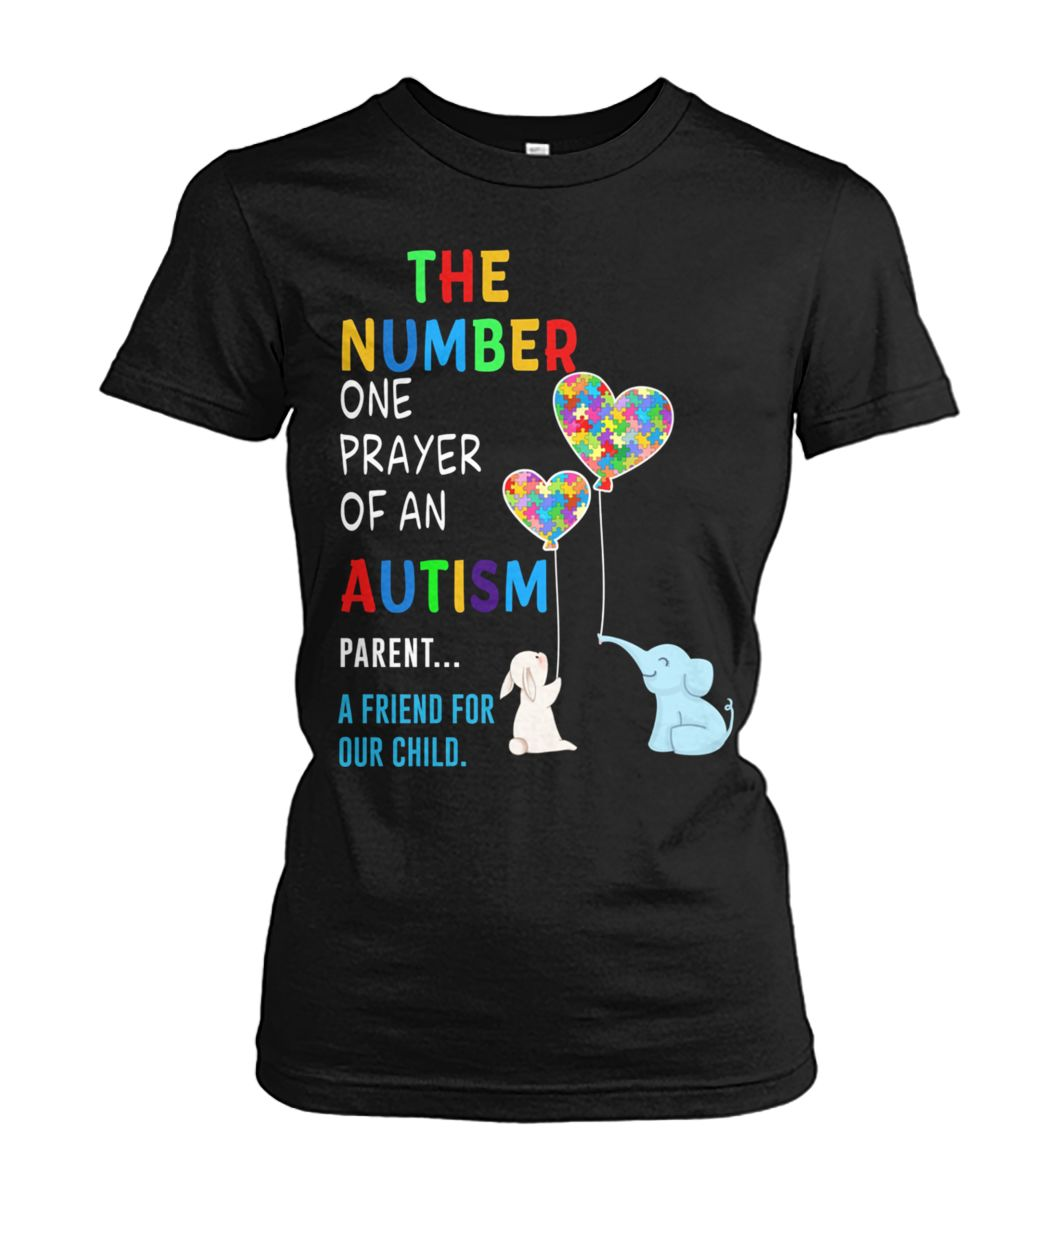 The number one prayer of an autism parent a friend for our child women's crew tee